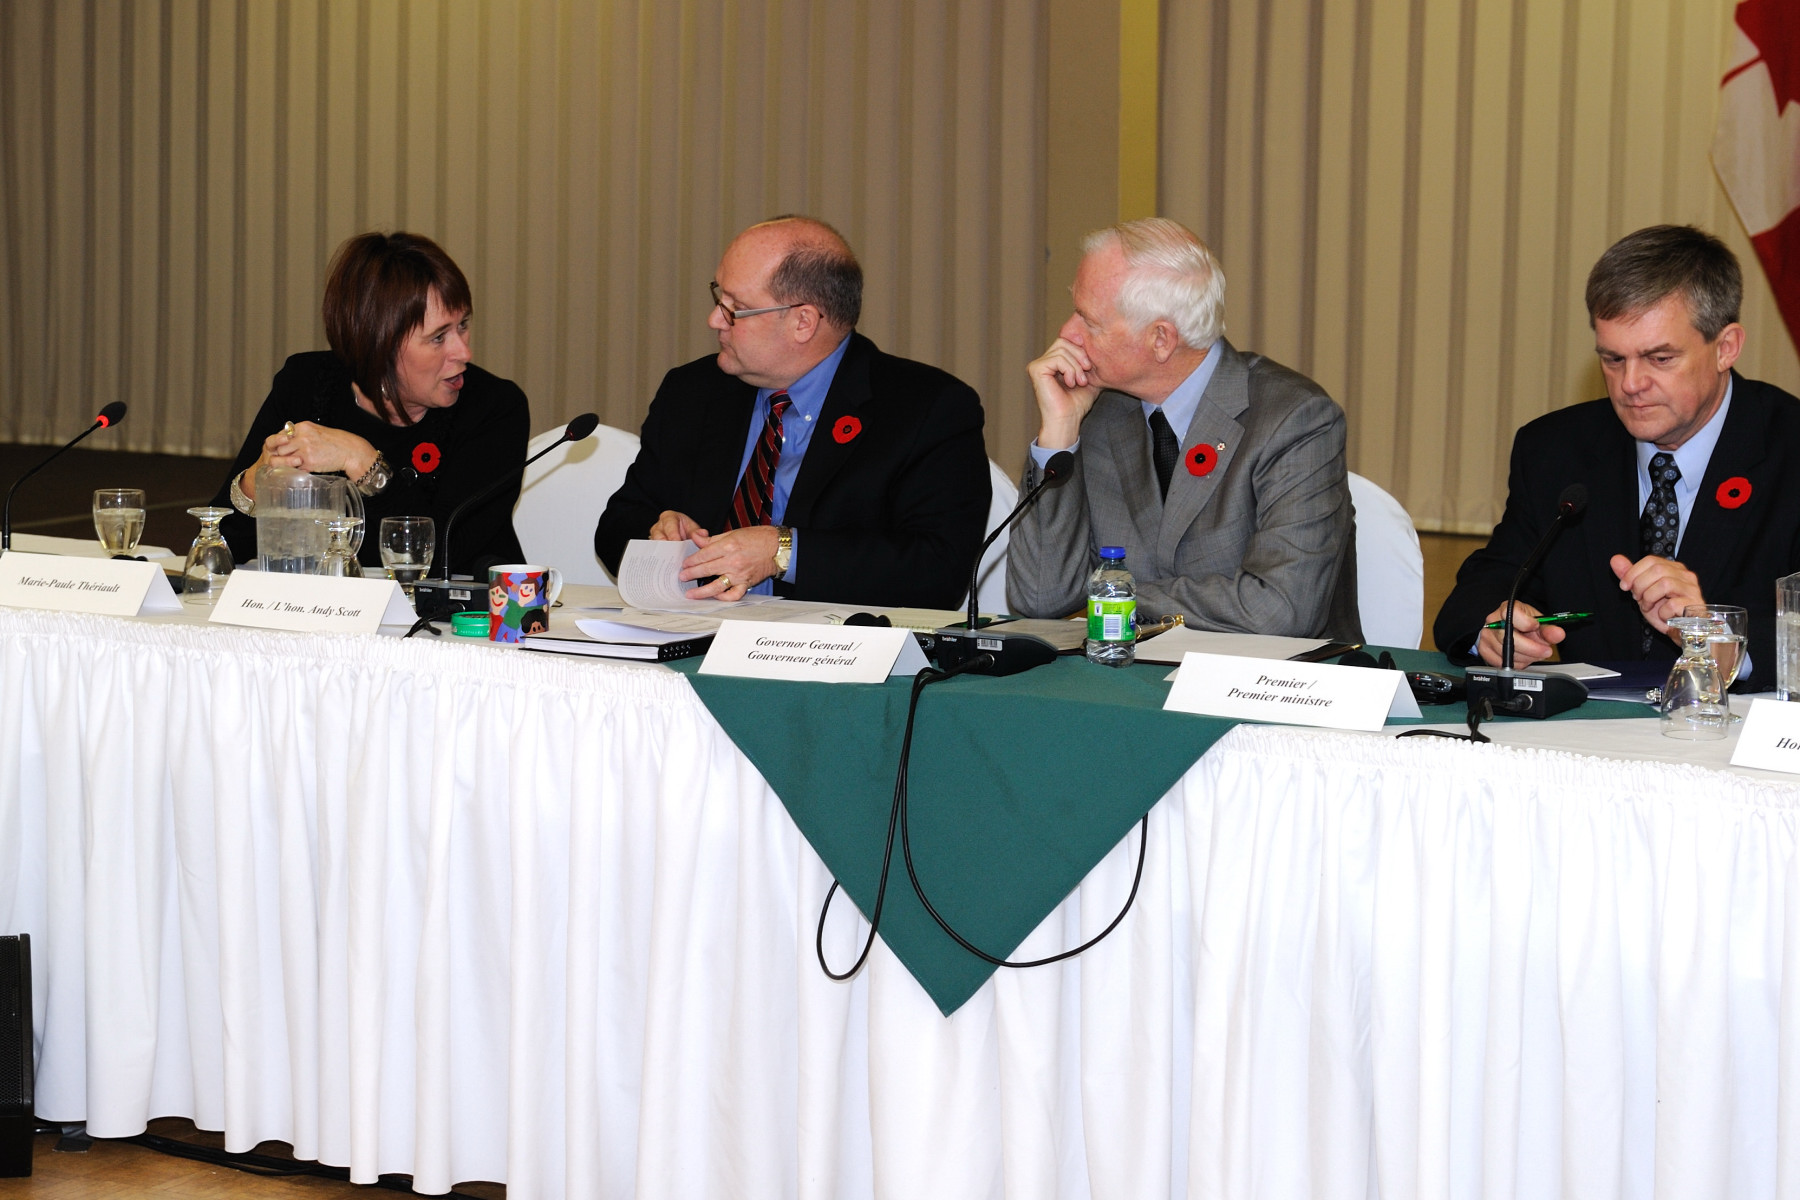 His Excellency attended the discussion launching Learning: Everybody's Project.  The initiative invited New Brunswickers to participate in a public discussion on the value of learning at all stages of life; the roles of government, community, family and individuals in nurturing a learning society; and the actions that can be taken collectively to actively embrace a learning culture.